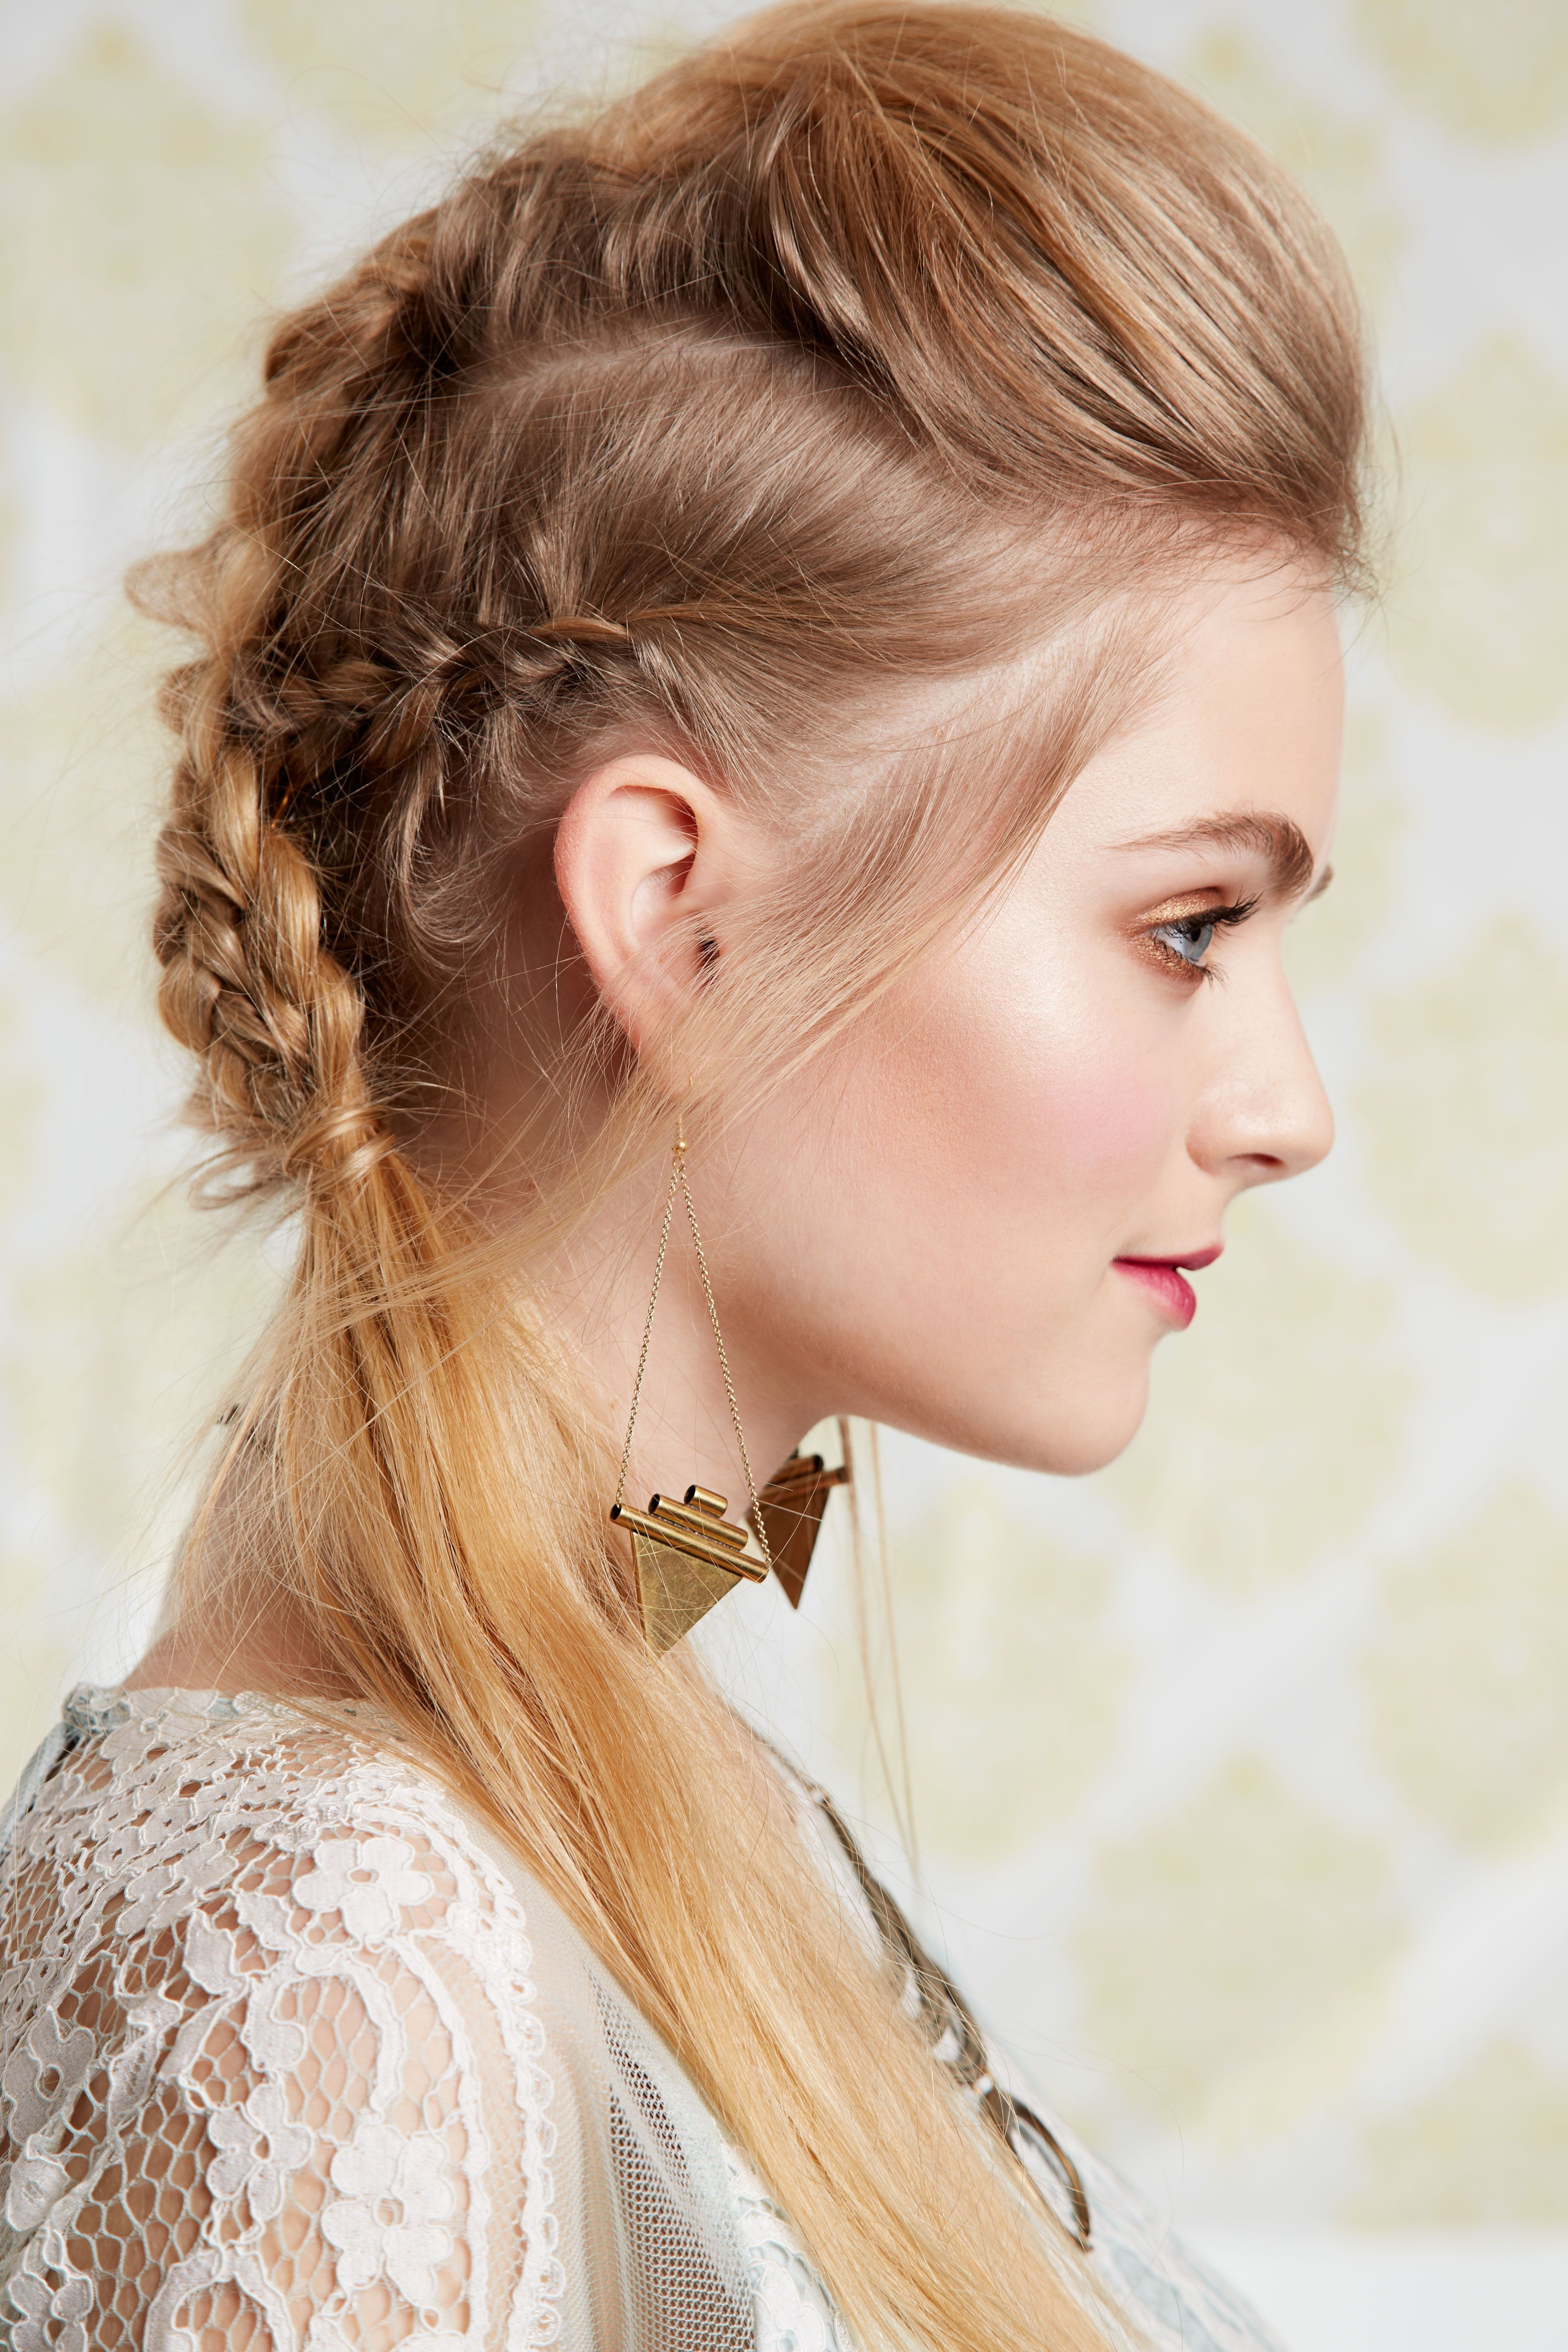 13 Cute Easy Hairstyles For 2018 – Best Quick Hairstyles For Dirty Hair Throughout Preferred Simple Messy Side Ponytail Hairstyles (View 18 of 20)